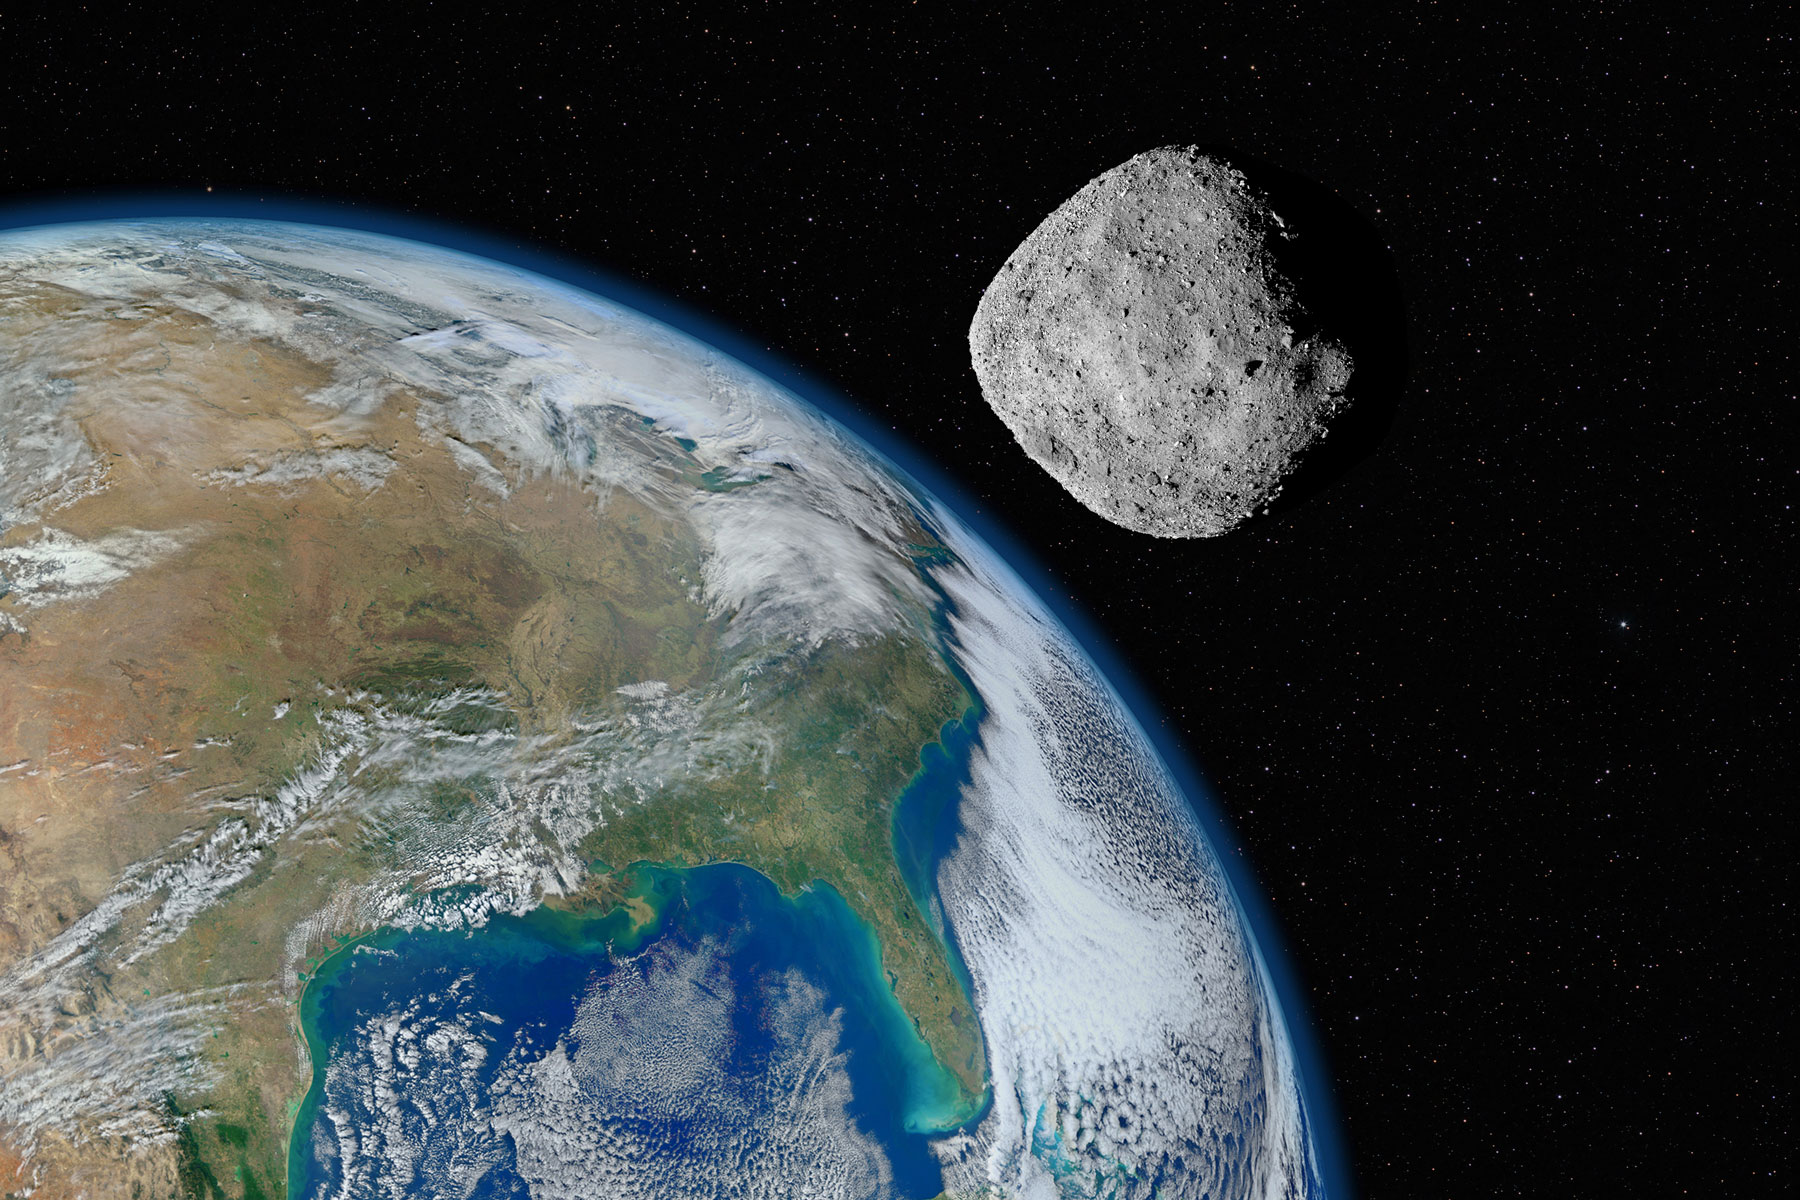 asteroid approaching planet Earth